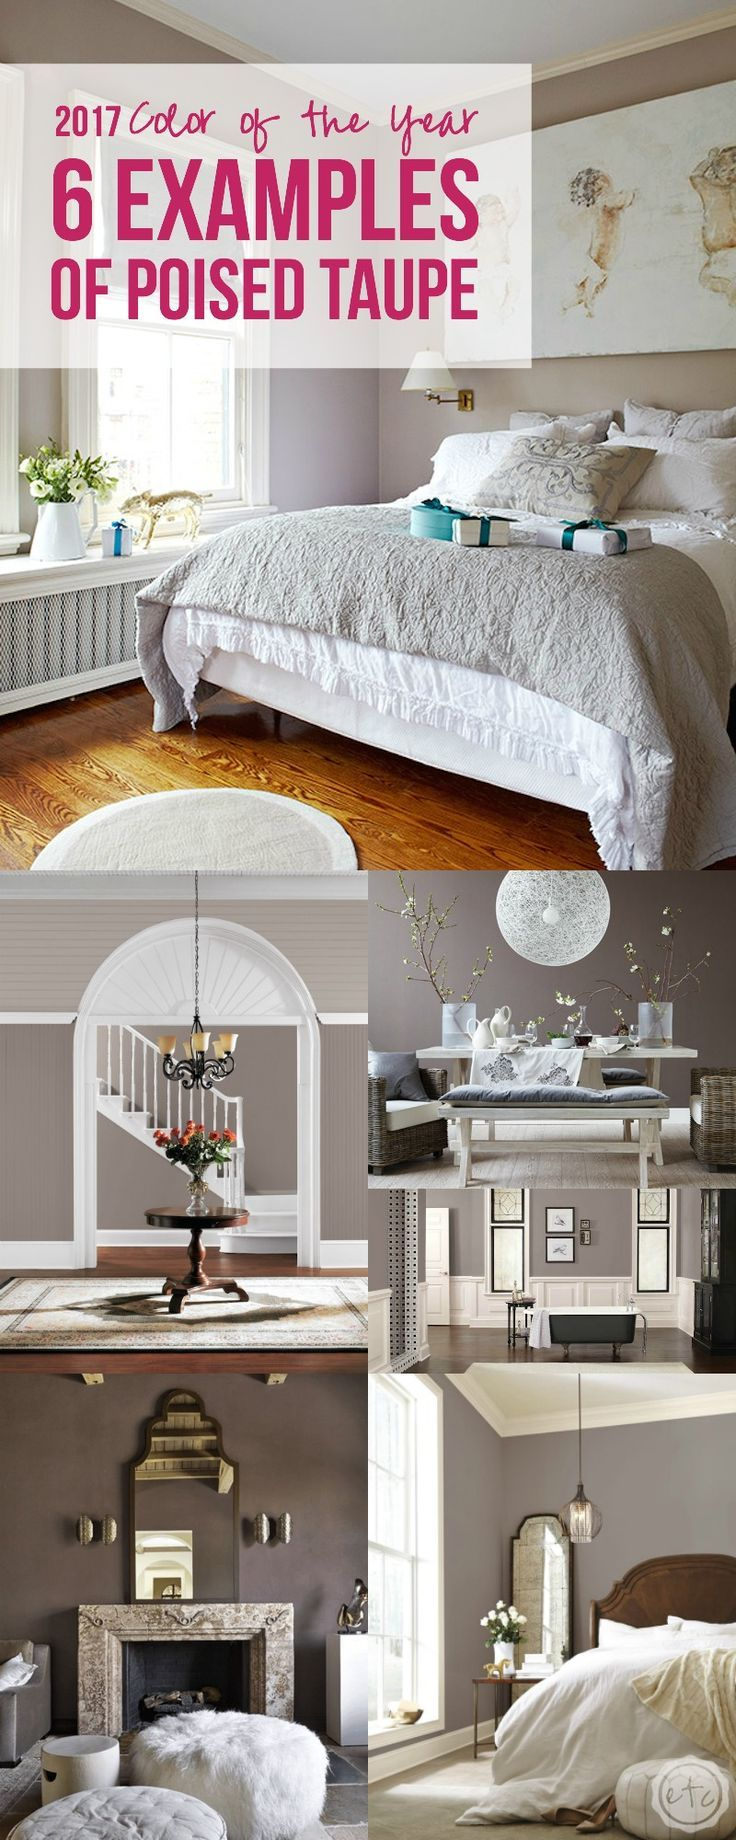 Best 25+ Taupe bedroom ideas on Pinterest | Bedroom paint ...